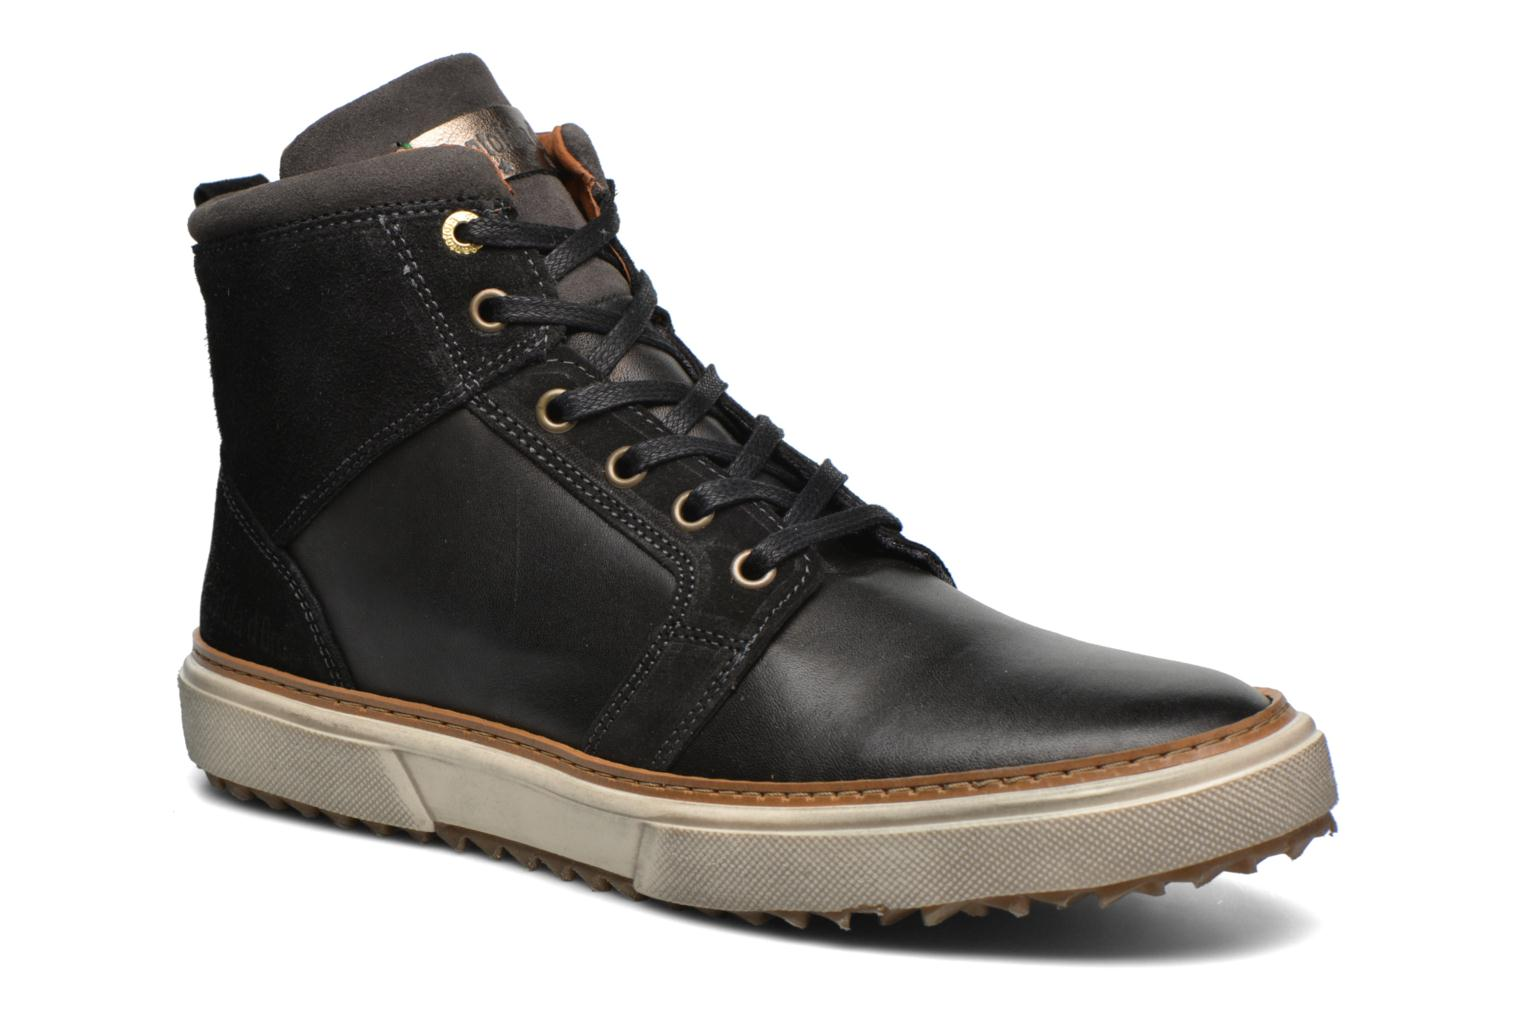 Sneakers Benevento Fur Mid Men by Pantofola d'Oro